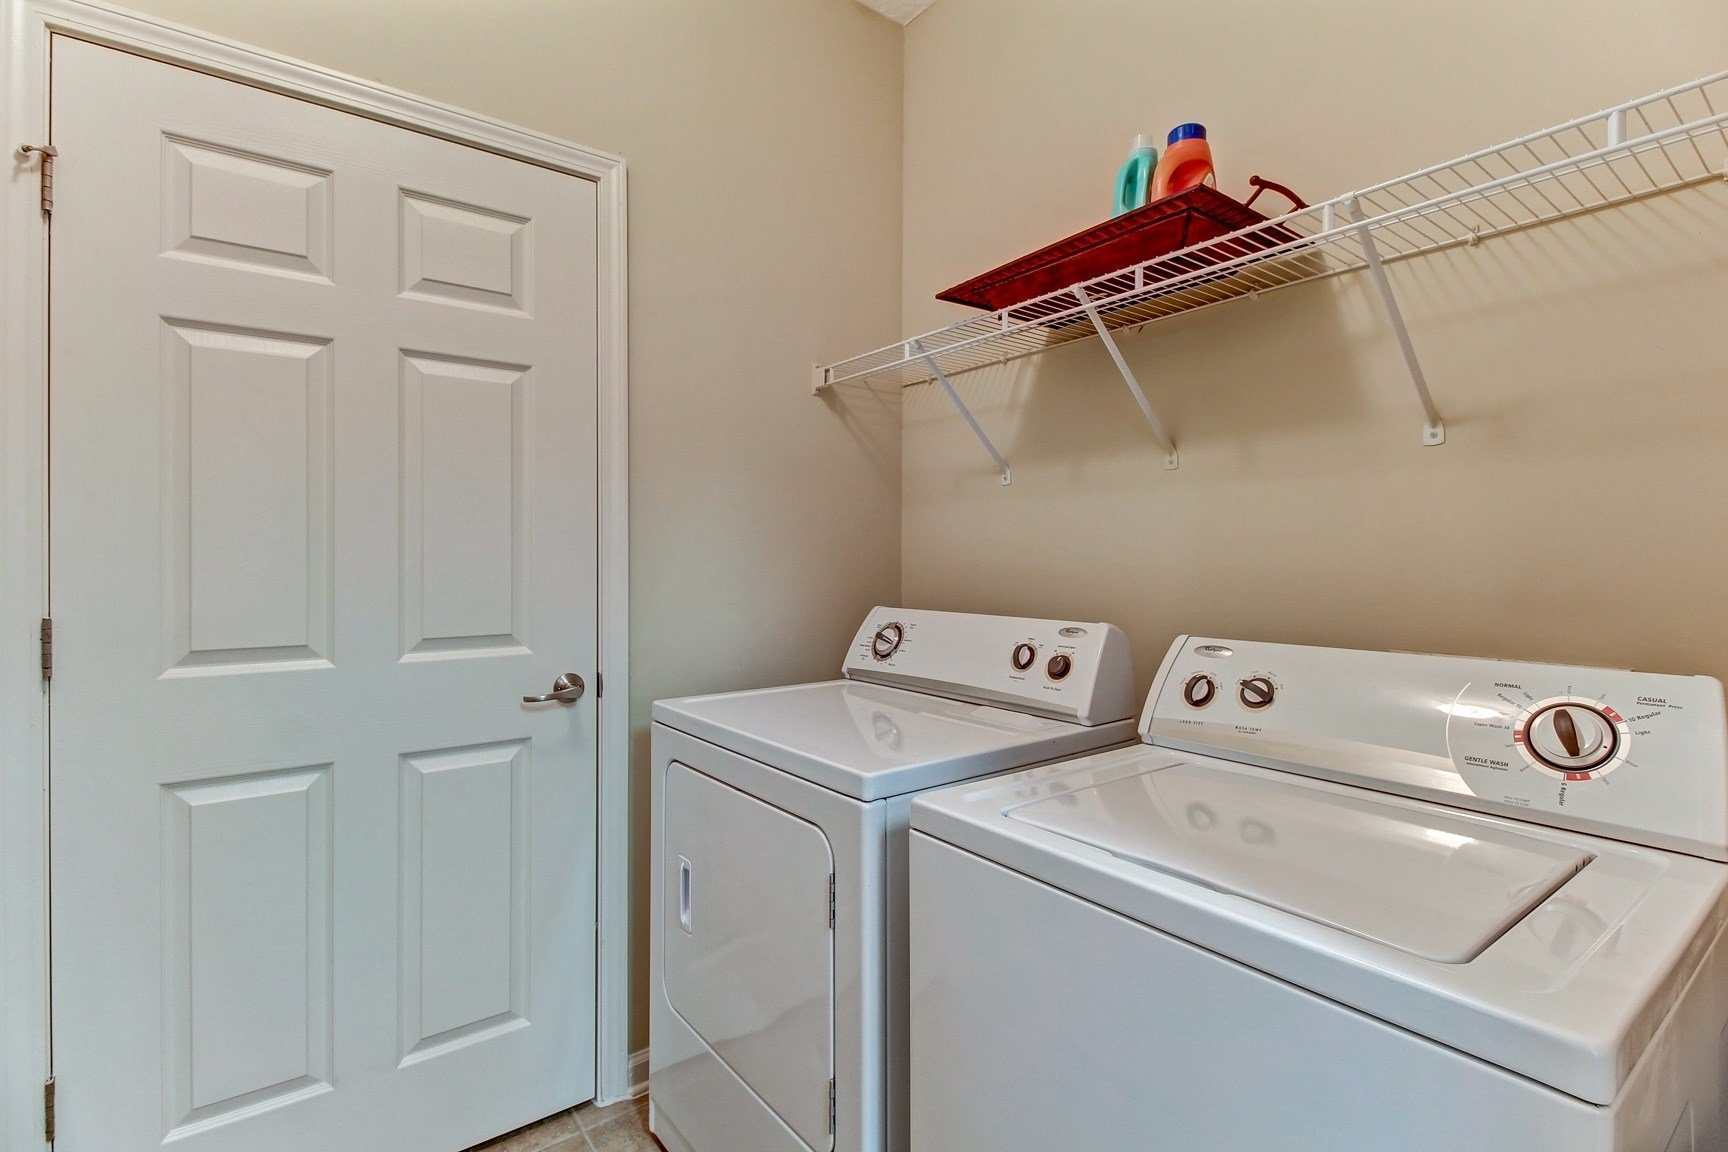 Laundry Room at Magnolia Village Apartments in Jacksonville, FL